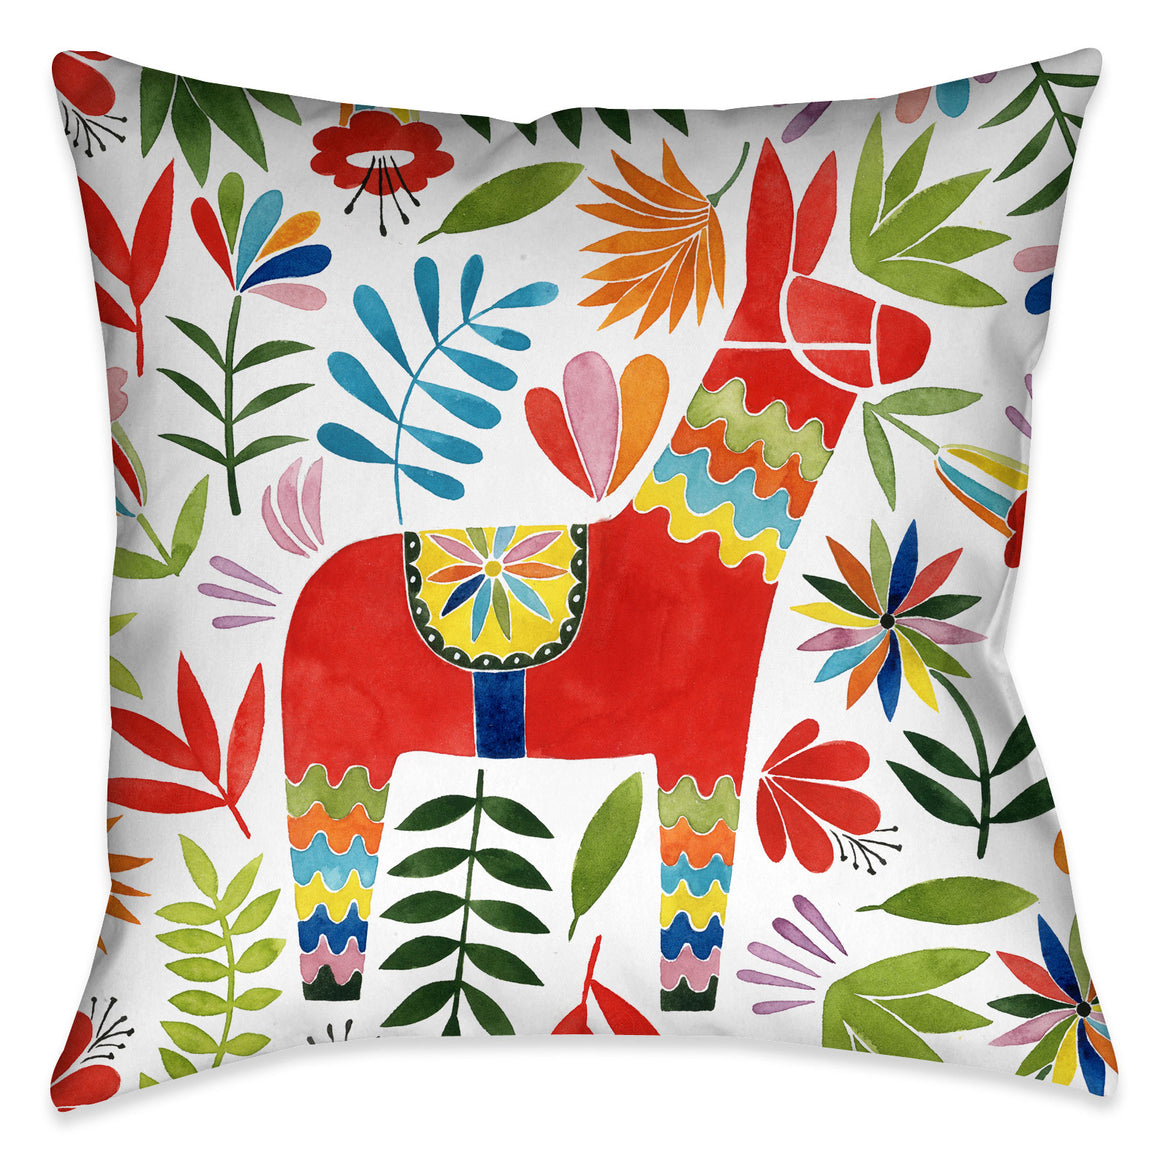 Fiesta Animal I Outdoor Decorative Pillow